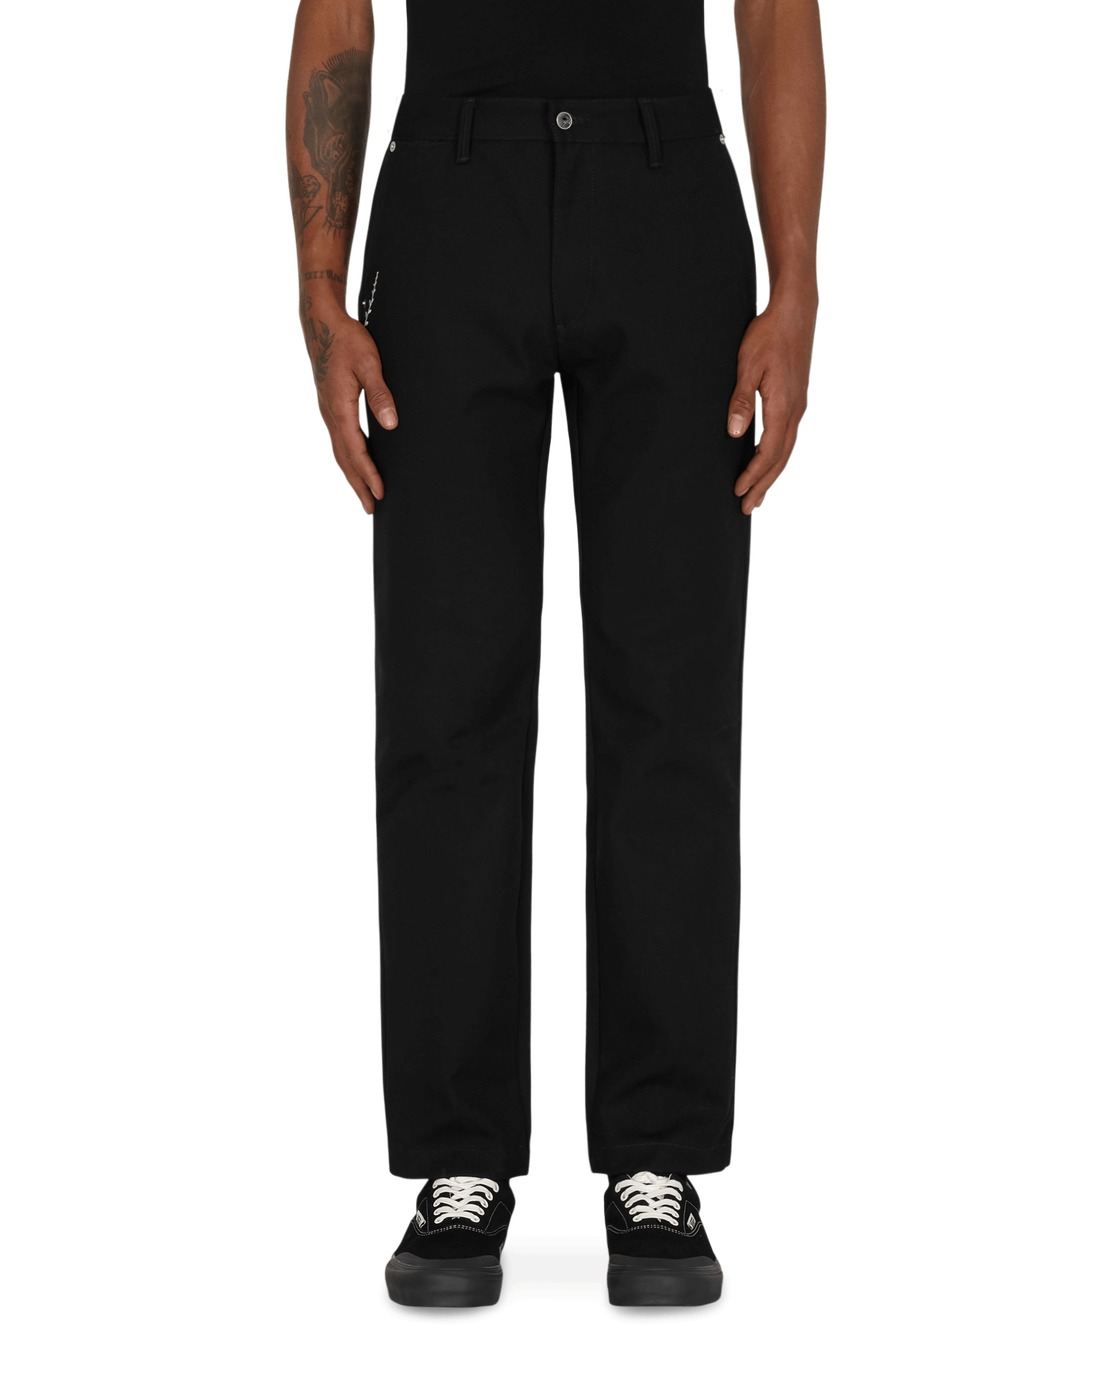 Photo: Vans Slam Jam X Julian Klincewicz Mccahon Pants Black